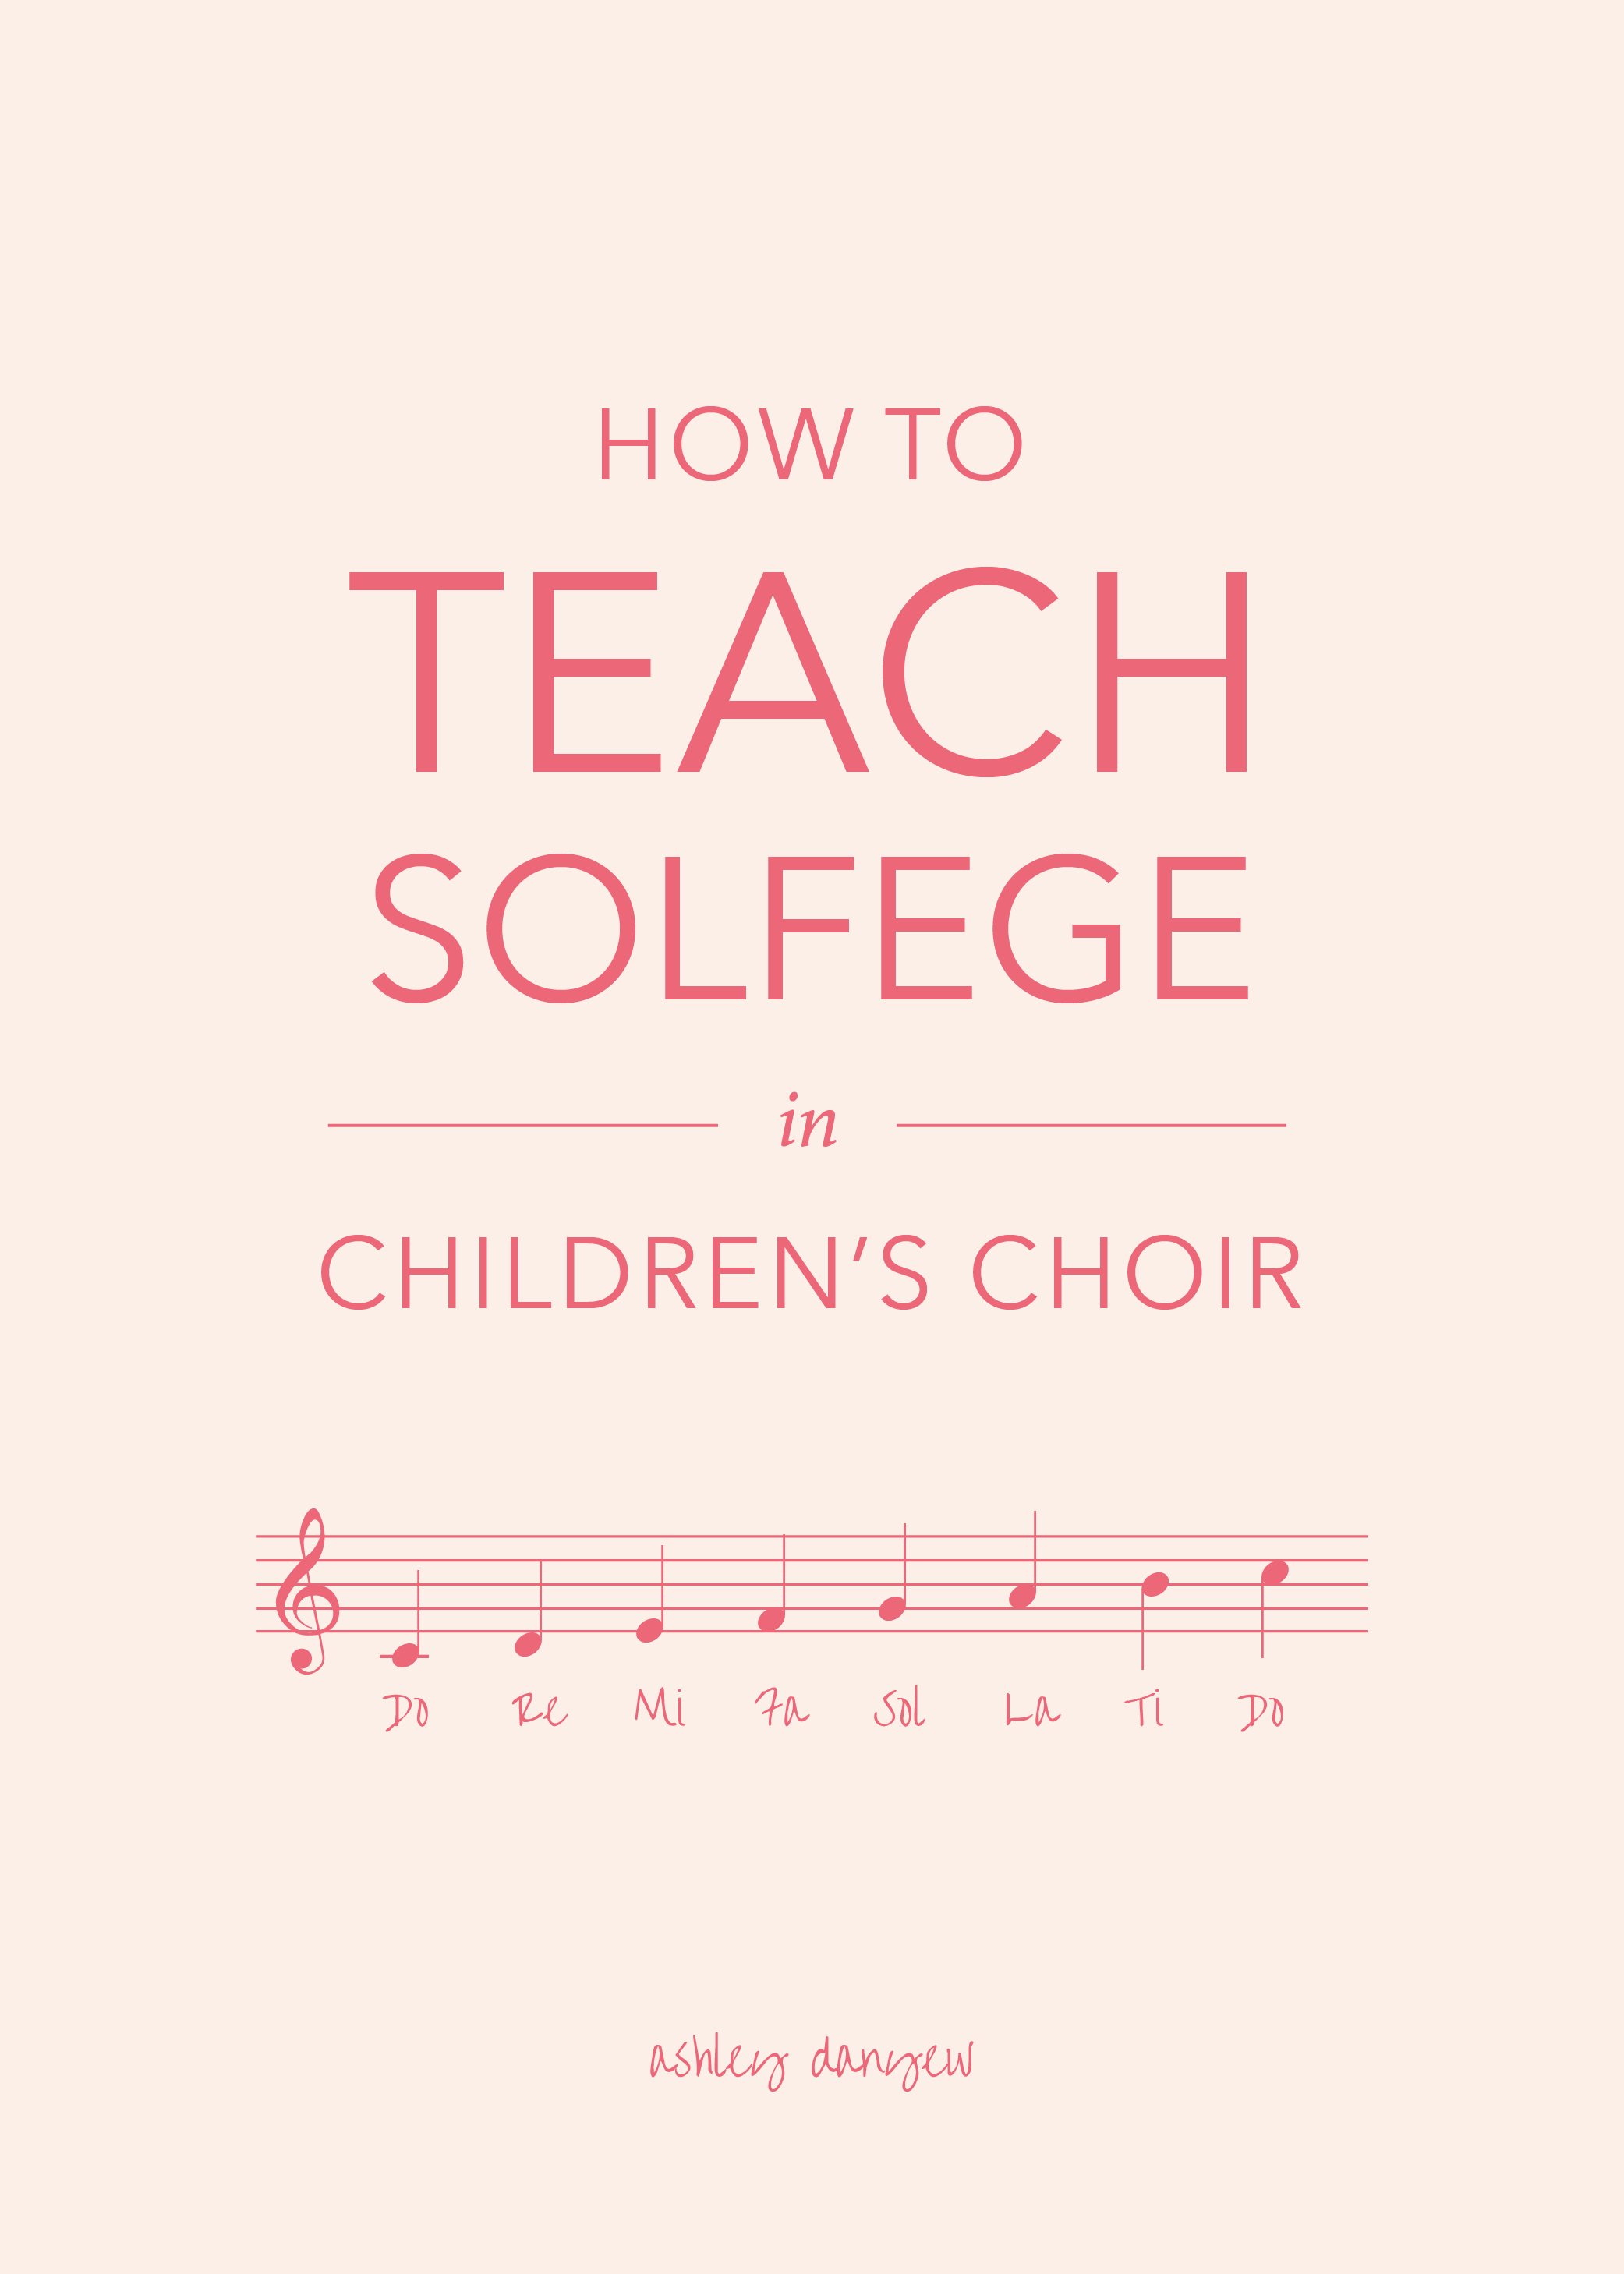 How-to-Teach-Solfege-in-Childrens-Choir-01.png